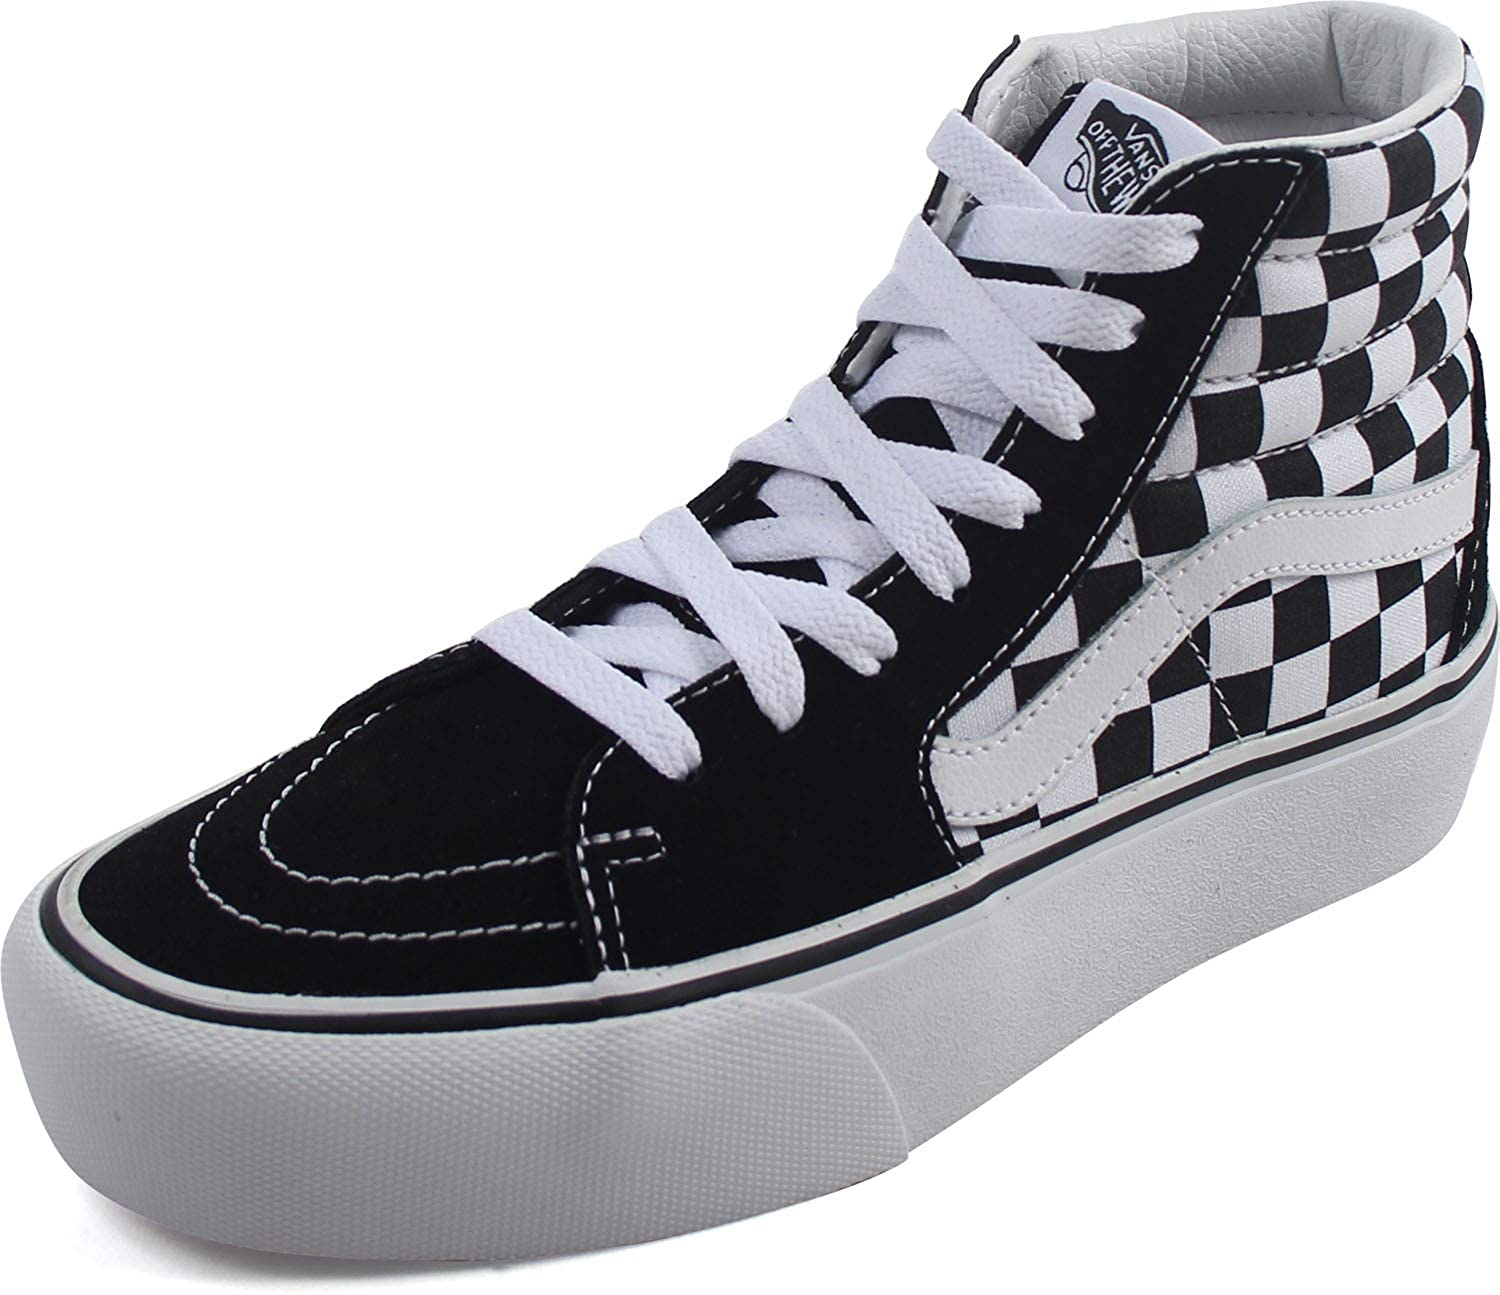 Vans - Womens Sk8-Hi Platform 2.0 Shoes, Size: 11 B(M) US Womens, Color:  Checkerboard/True White